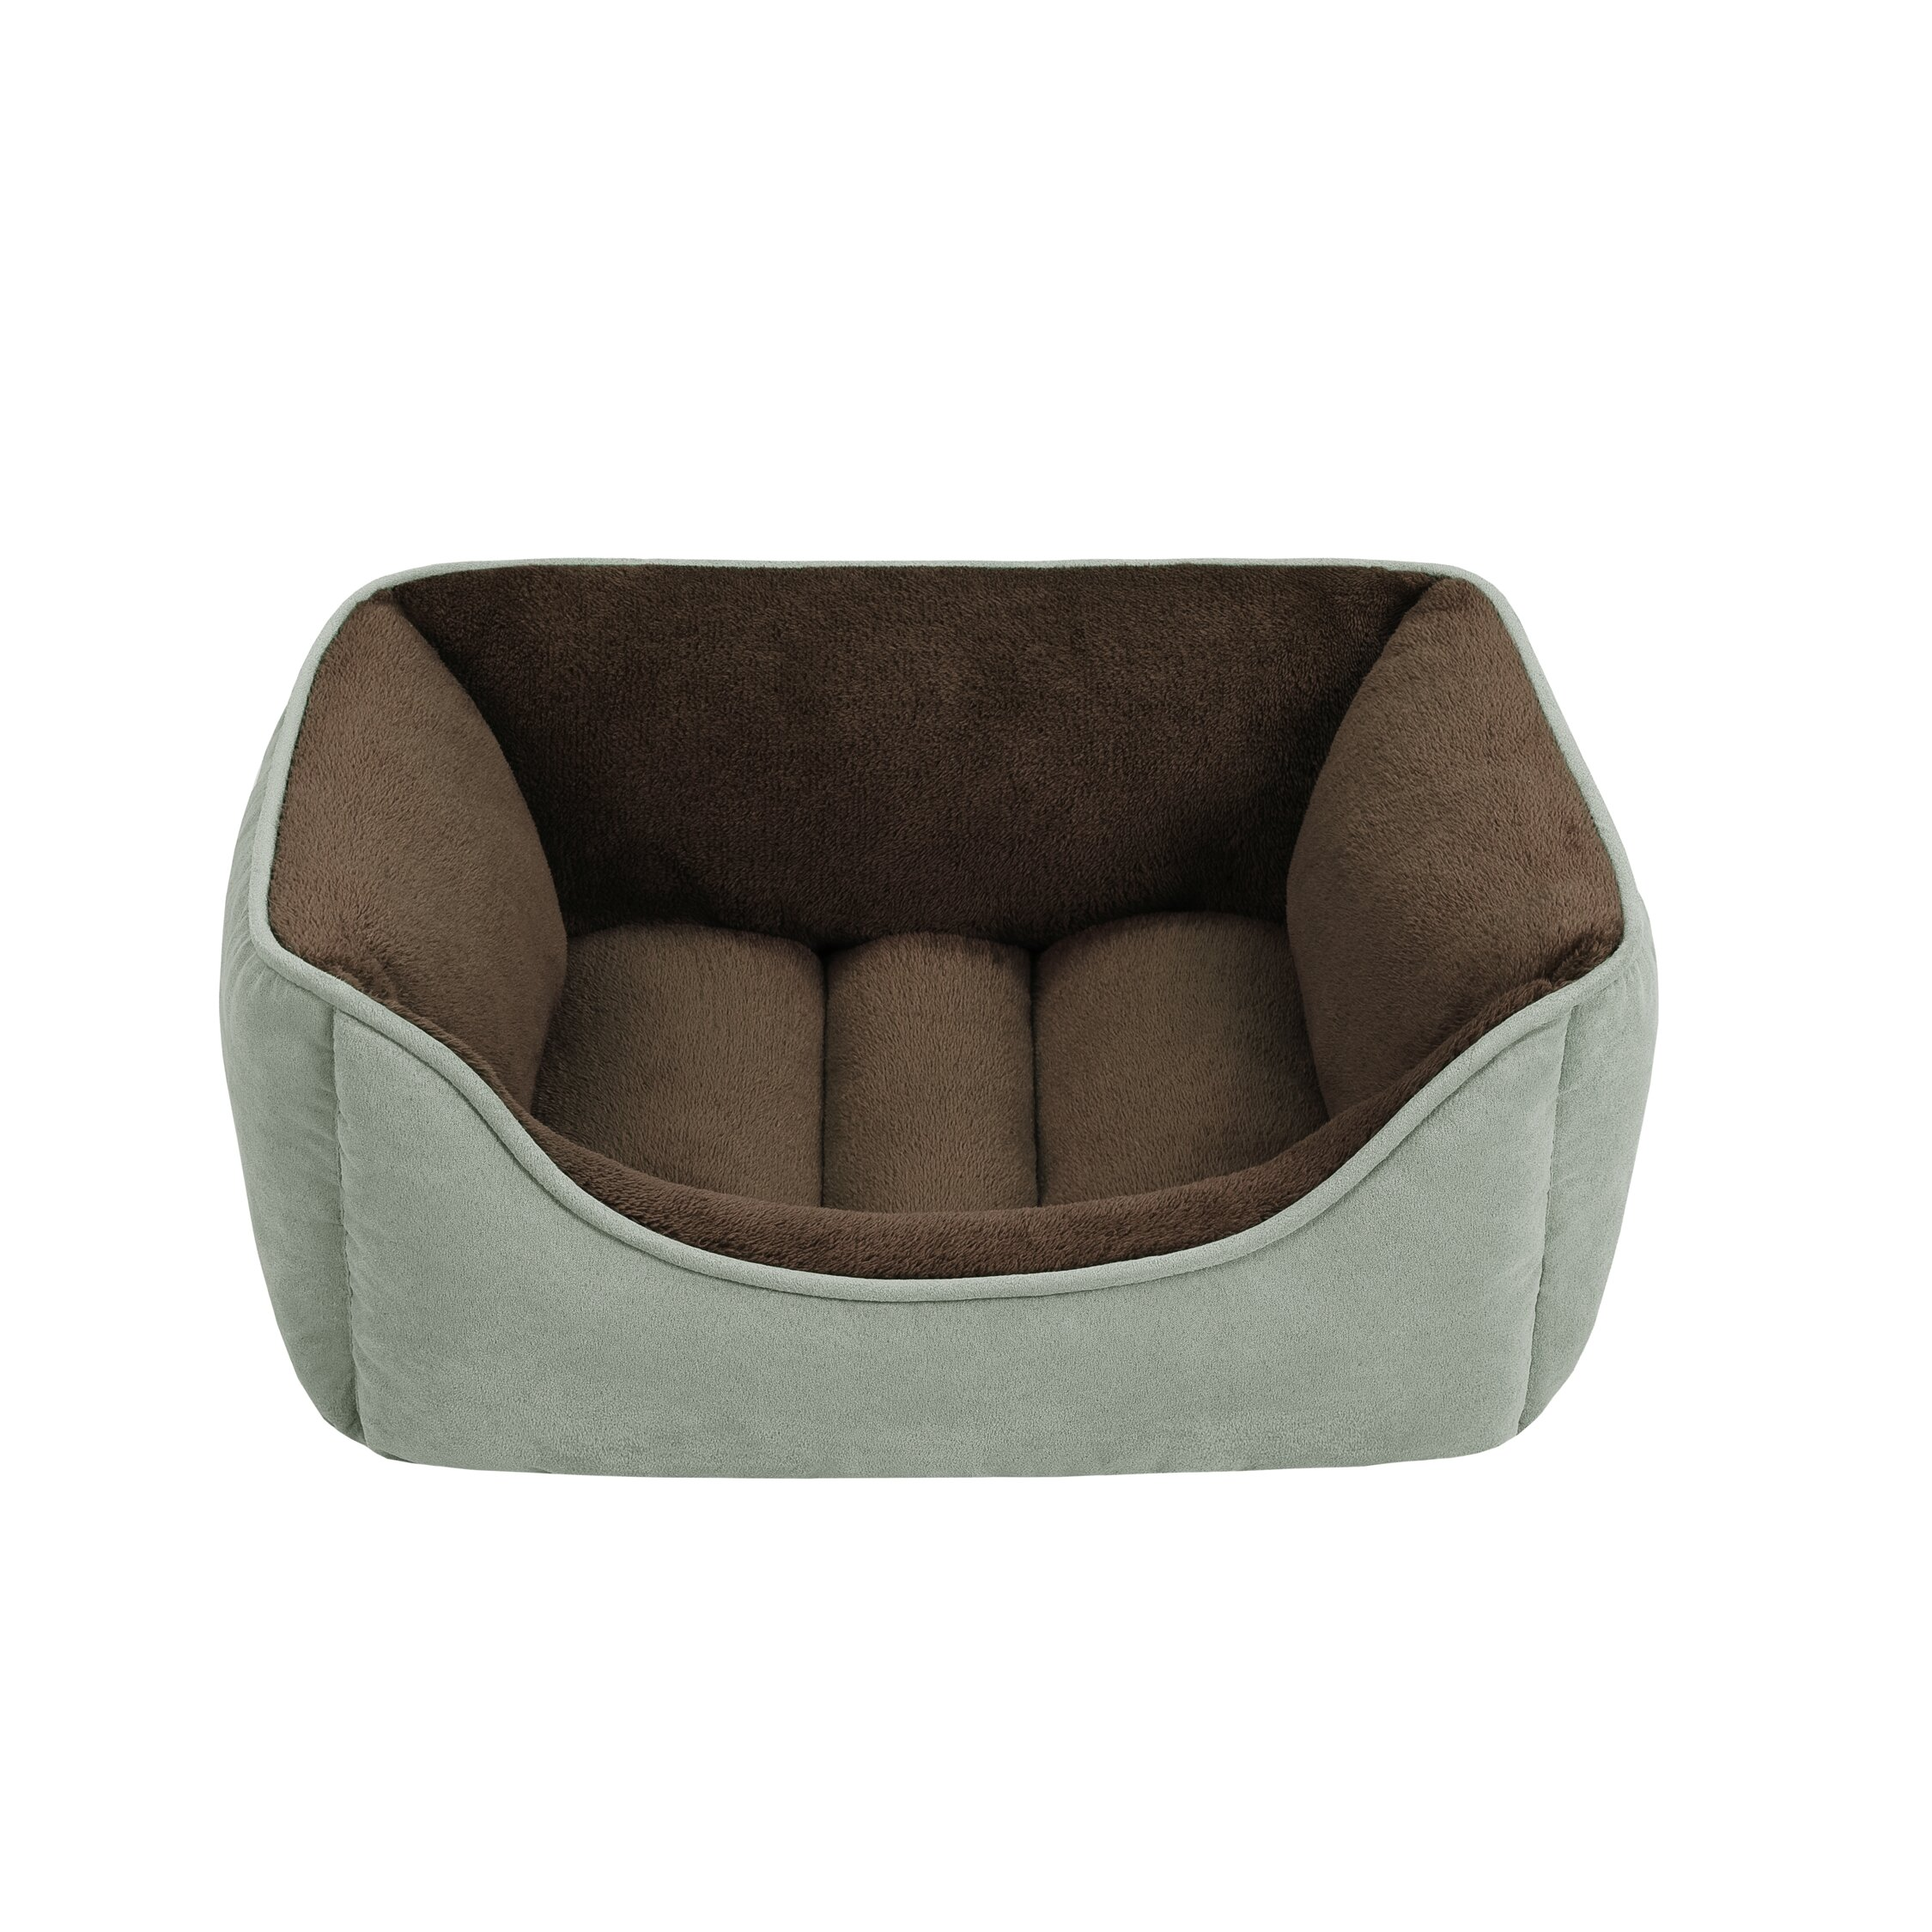 Soft Touch Faux Suede Reversible Rectangular Cuddler  : Soft Touch Faux Suede Reversible Rectangular Cuddler Bolster Dog Bed from www.wayfair.com size 2250 x 2250 jpeg 646kB